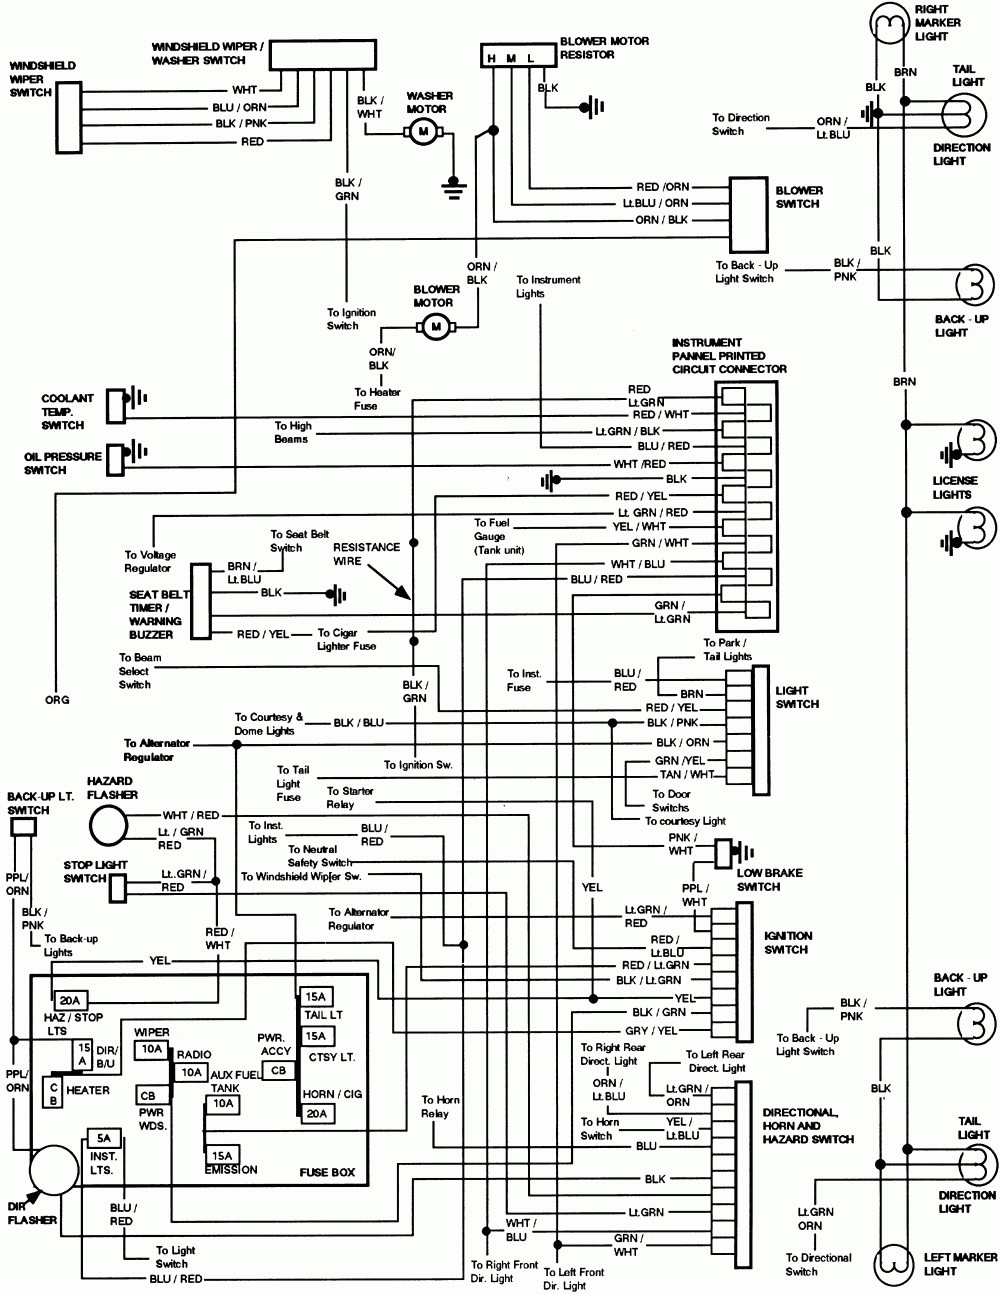 1996 Ford F700 Wiring Diagram Books Of Wiring Diagram \u2022 Car Wiring  Diagrams 1996 F700 Wiring Diagram